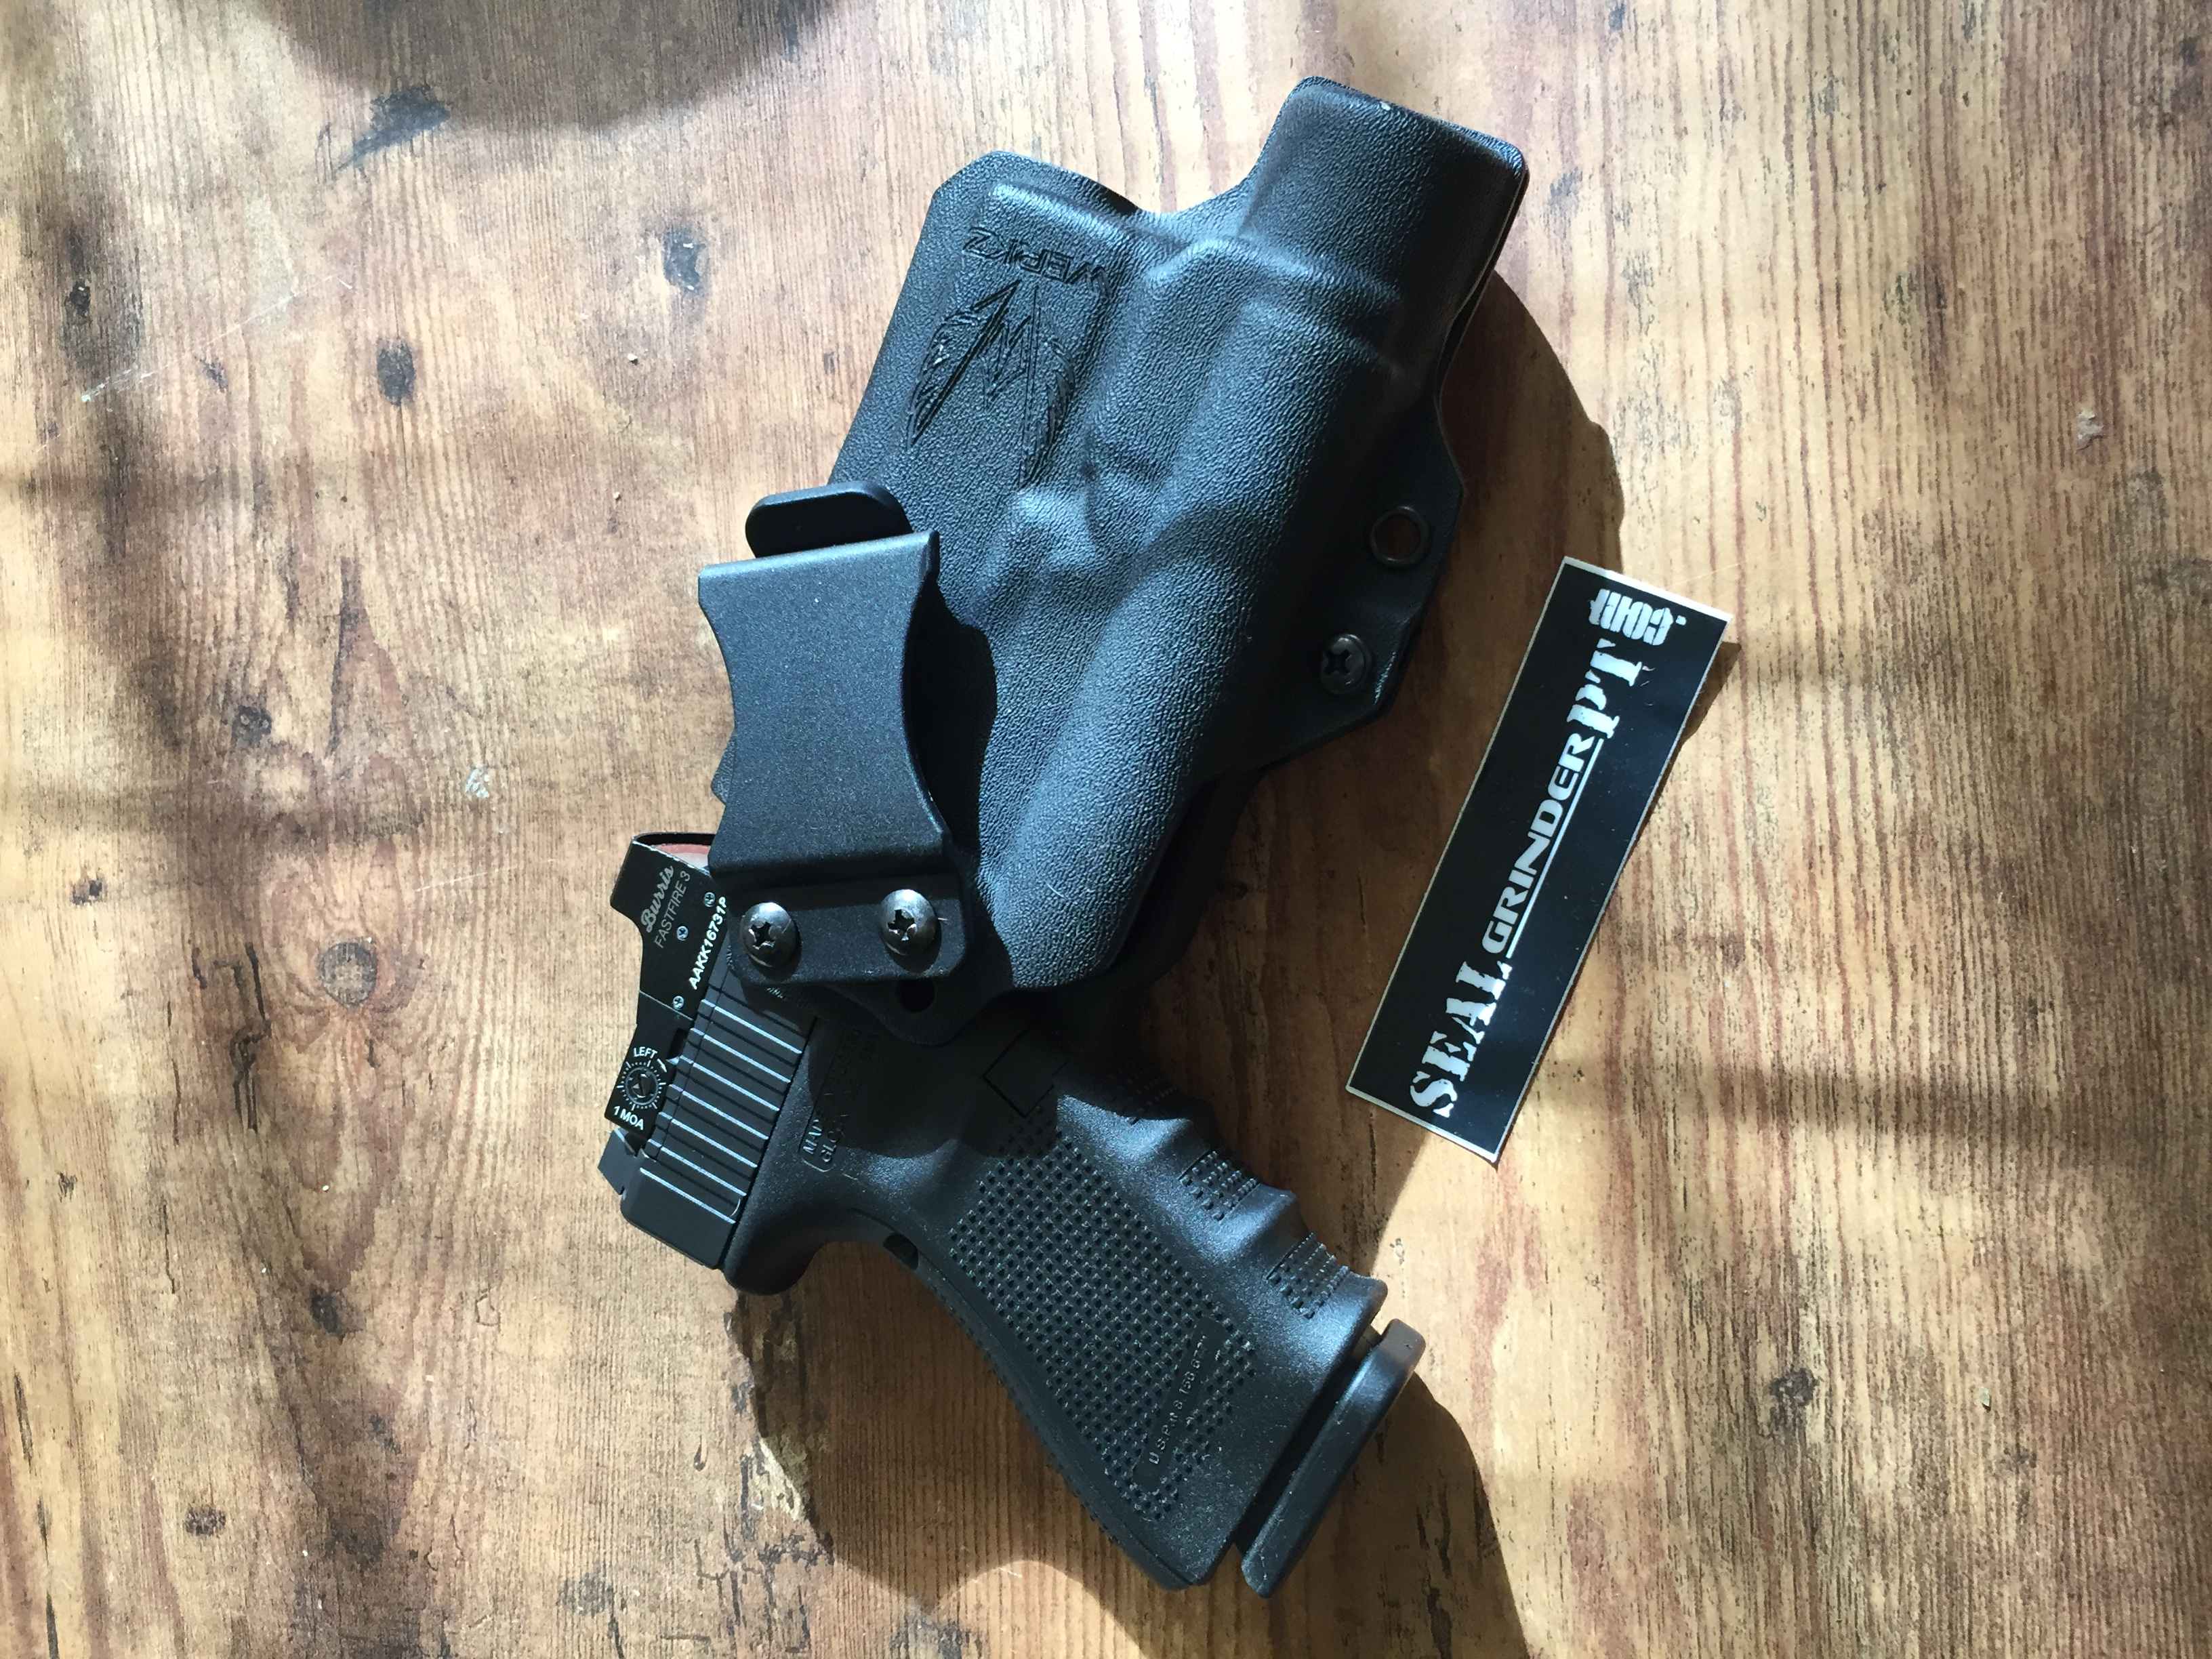 Gear Review: Werkz IWB TLR-1 Holster | SEALgrinderPT